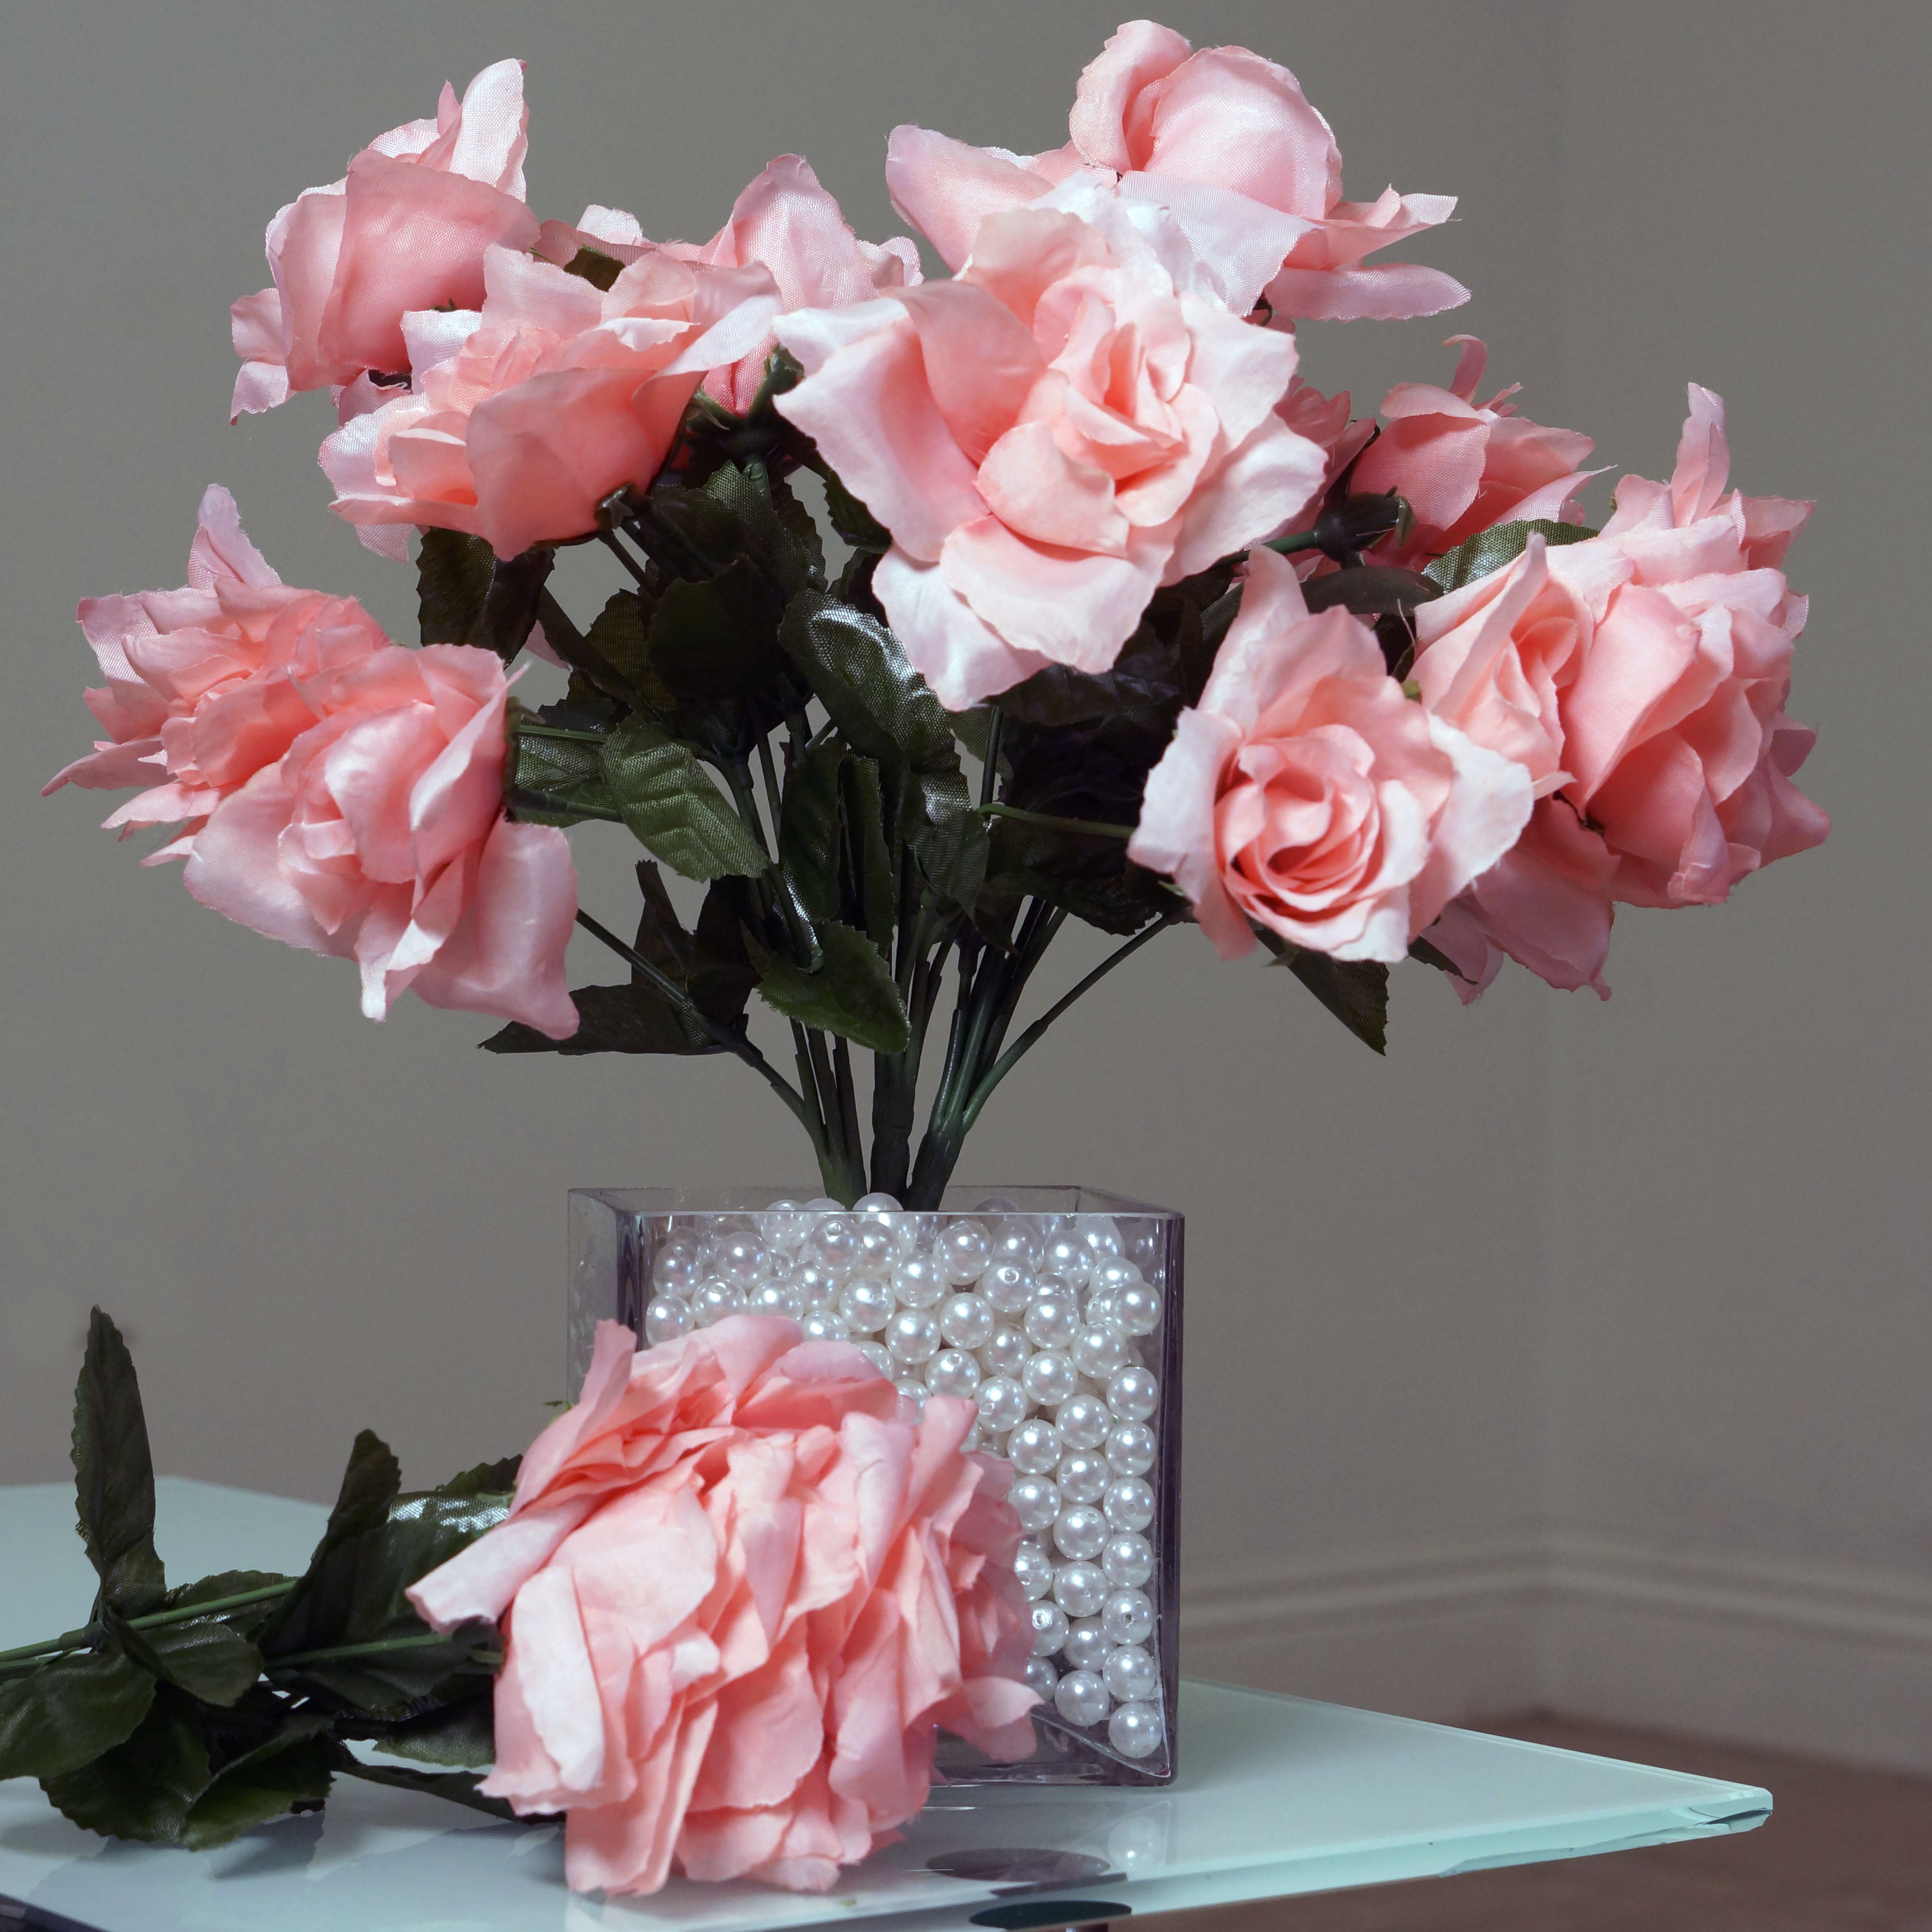 252 Silk Open Roses Wedding Flowers Bouquets Wholesale Supply ...